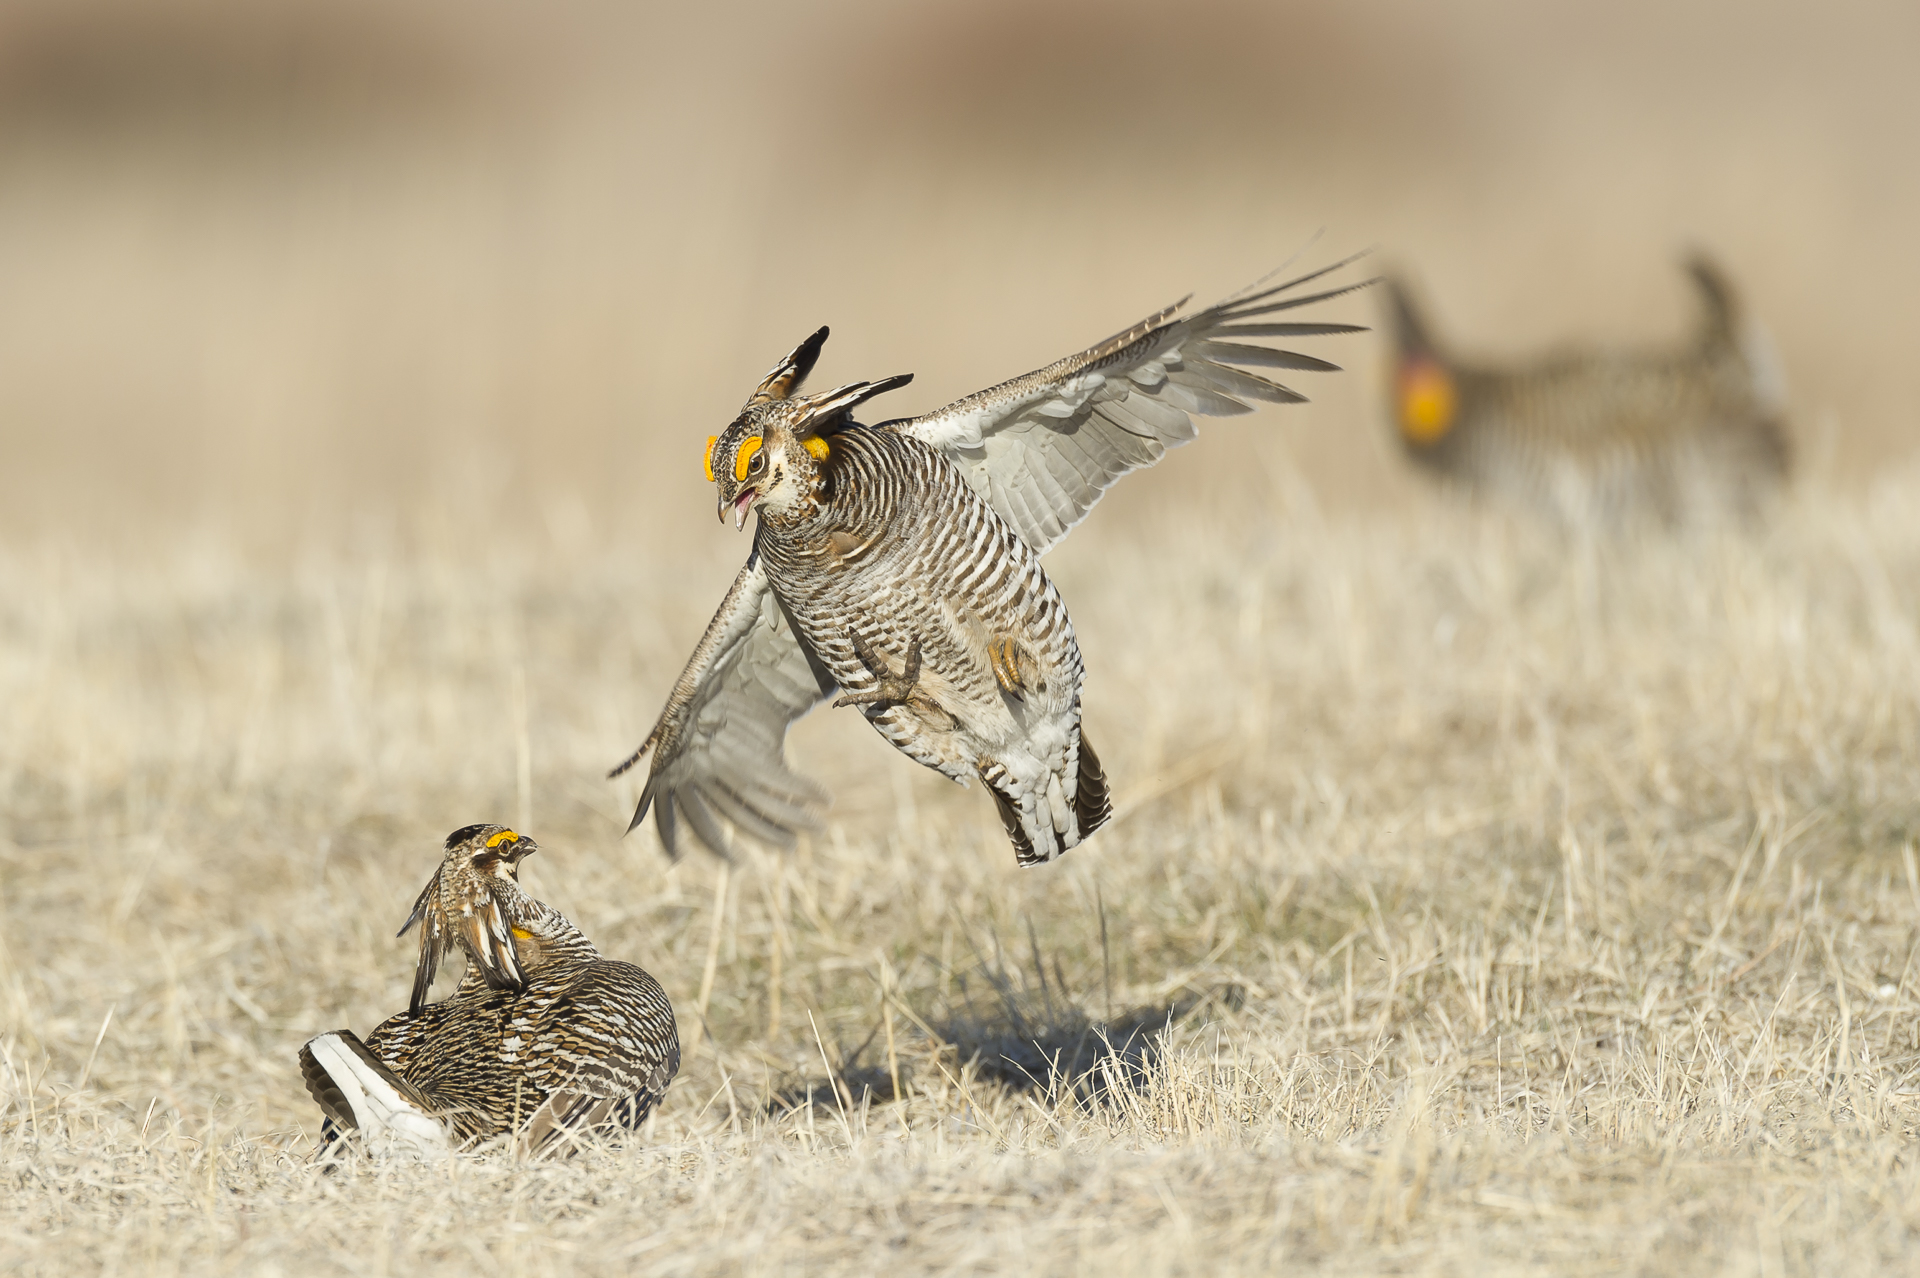 Cock fight: greater prairie chickens